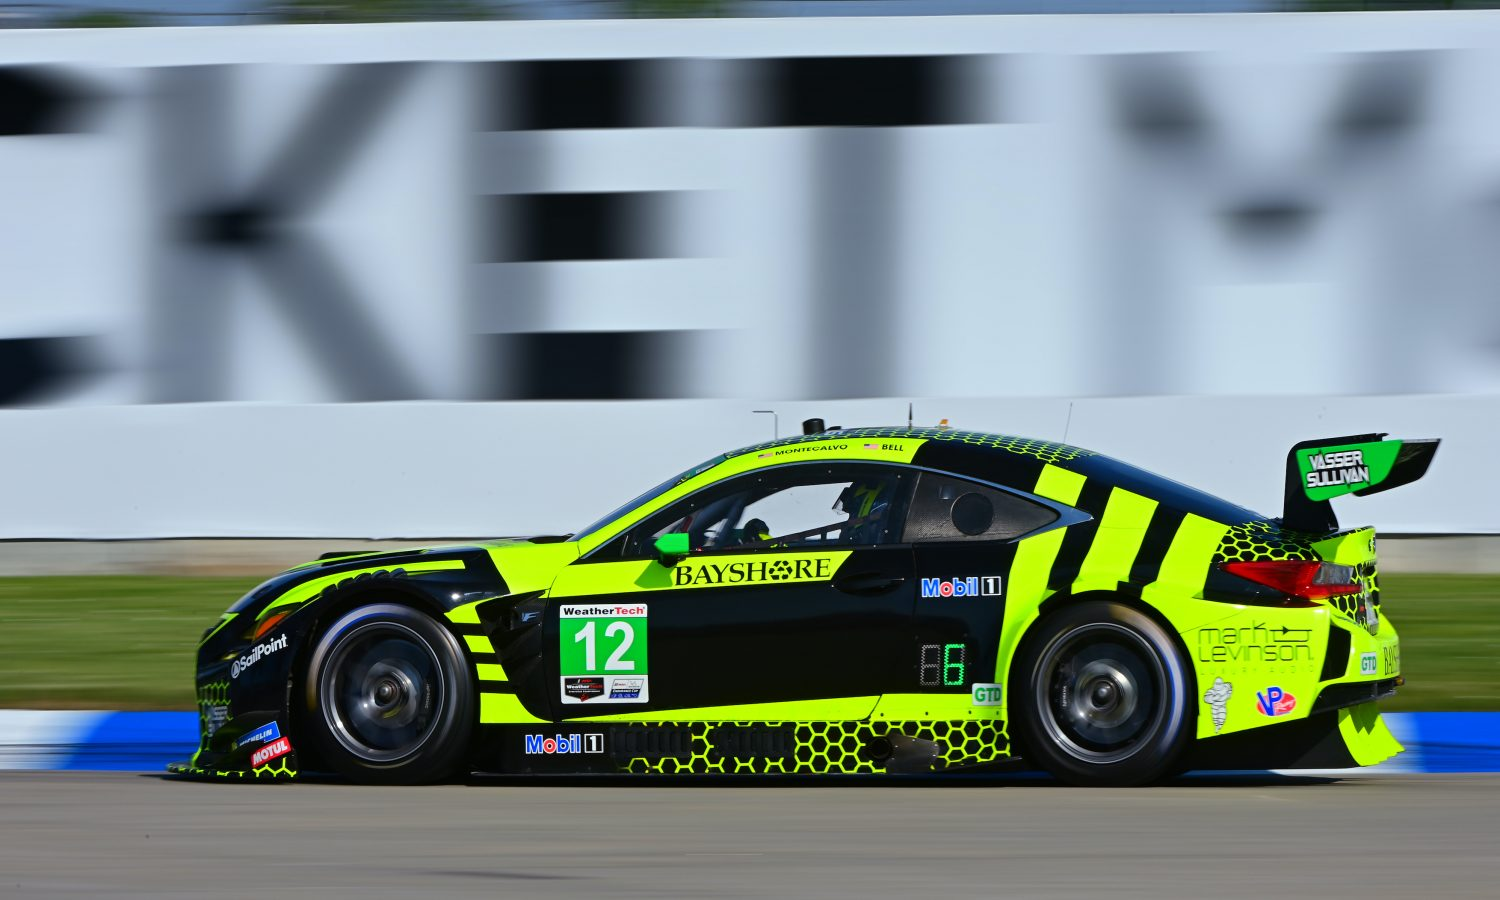 Lexus RC F GT3 Entries Earn Top-Five Finishes at Belle Isle